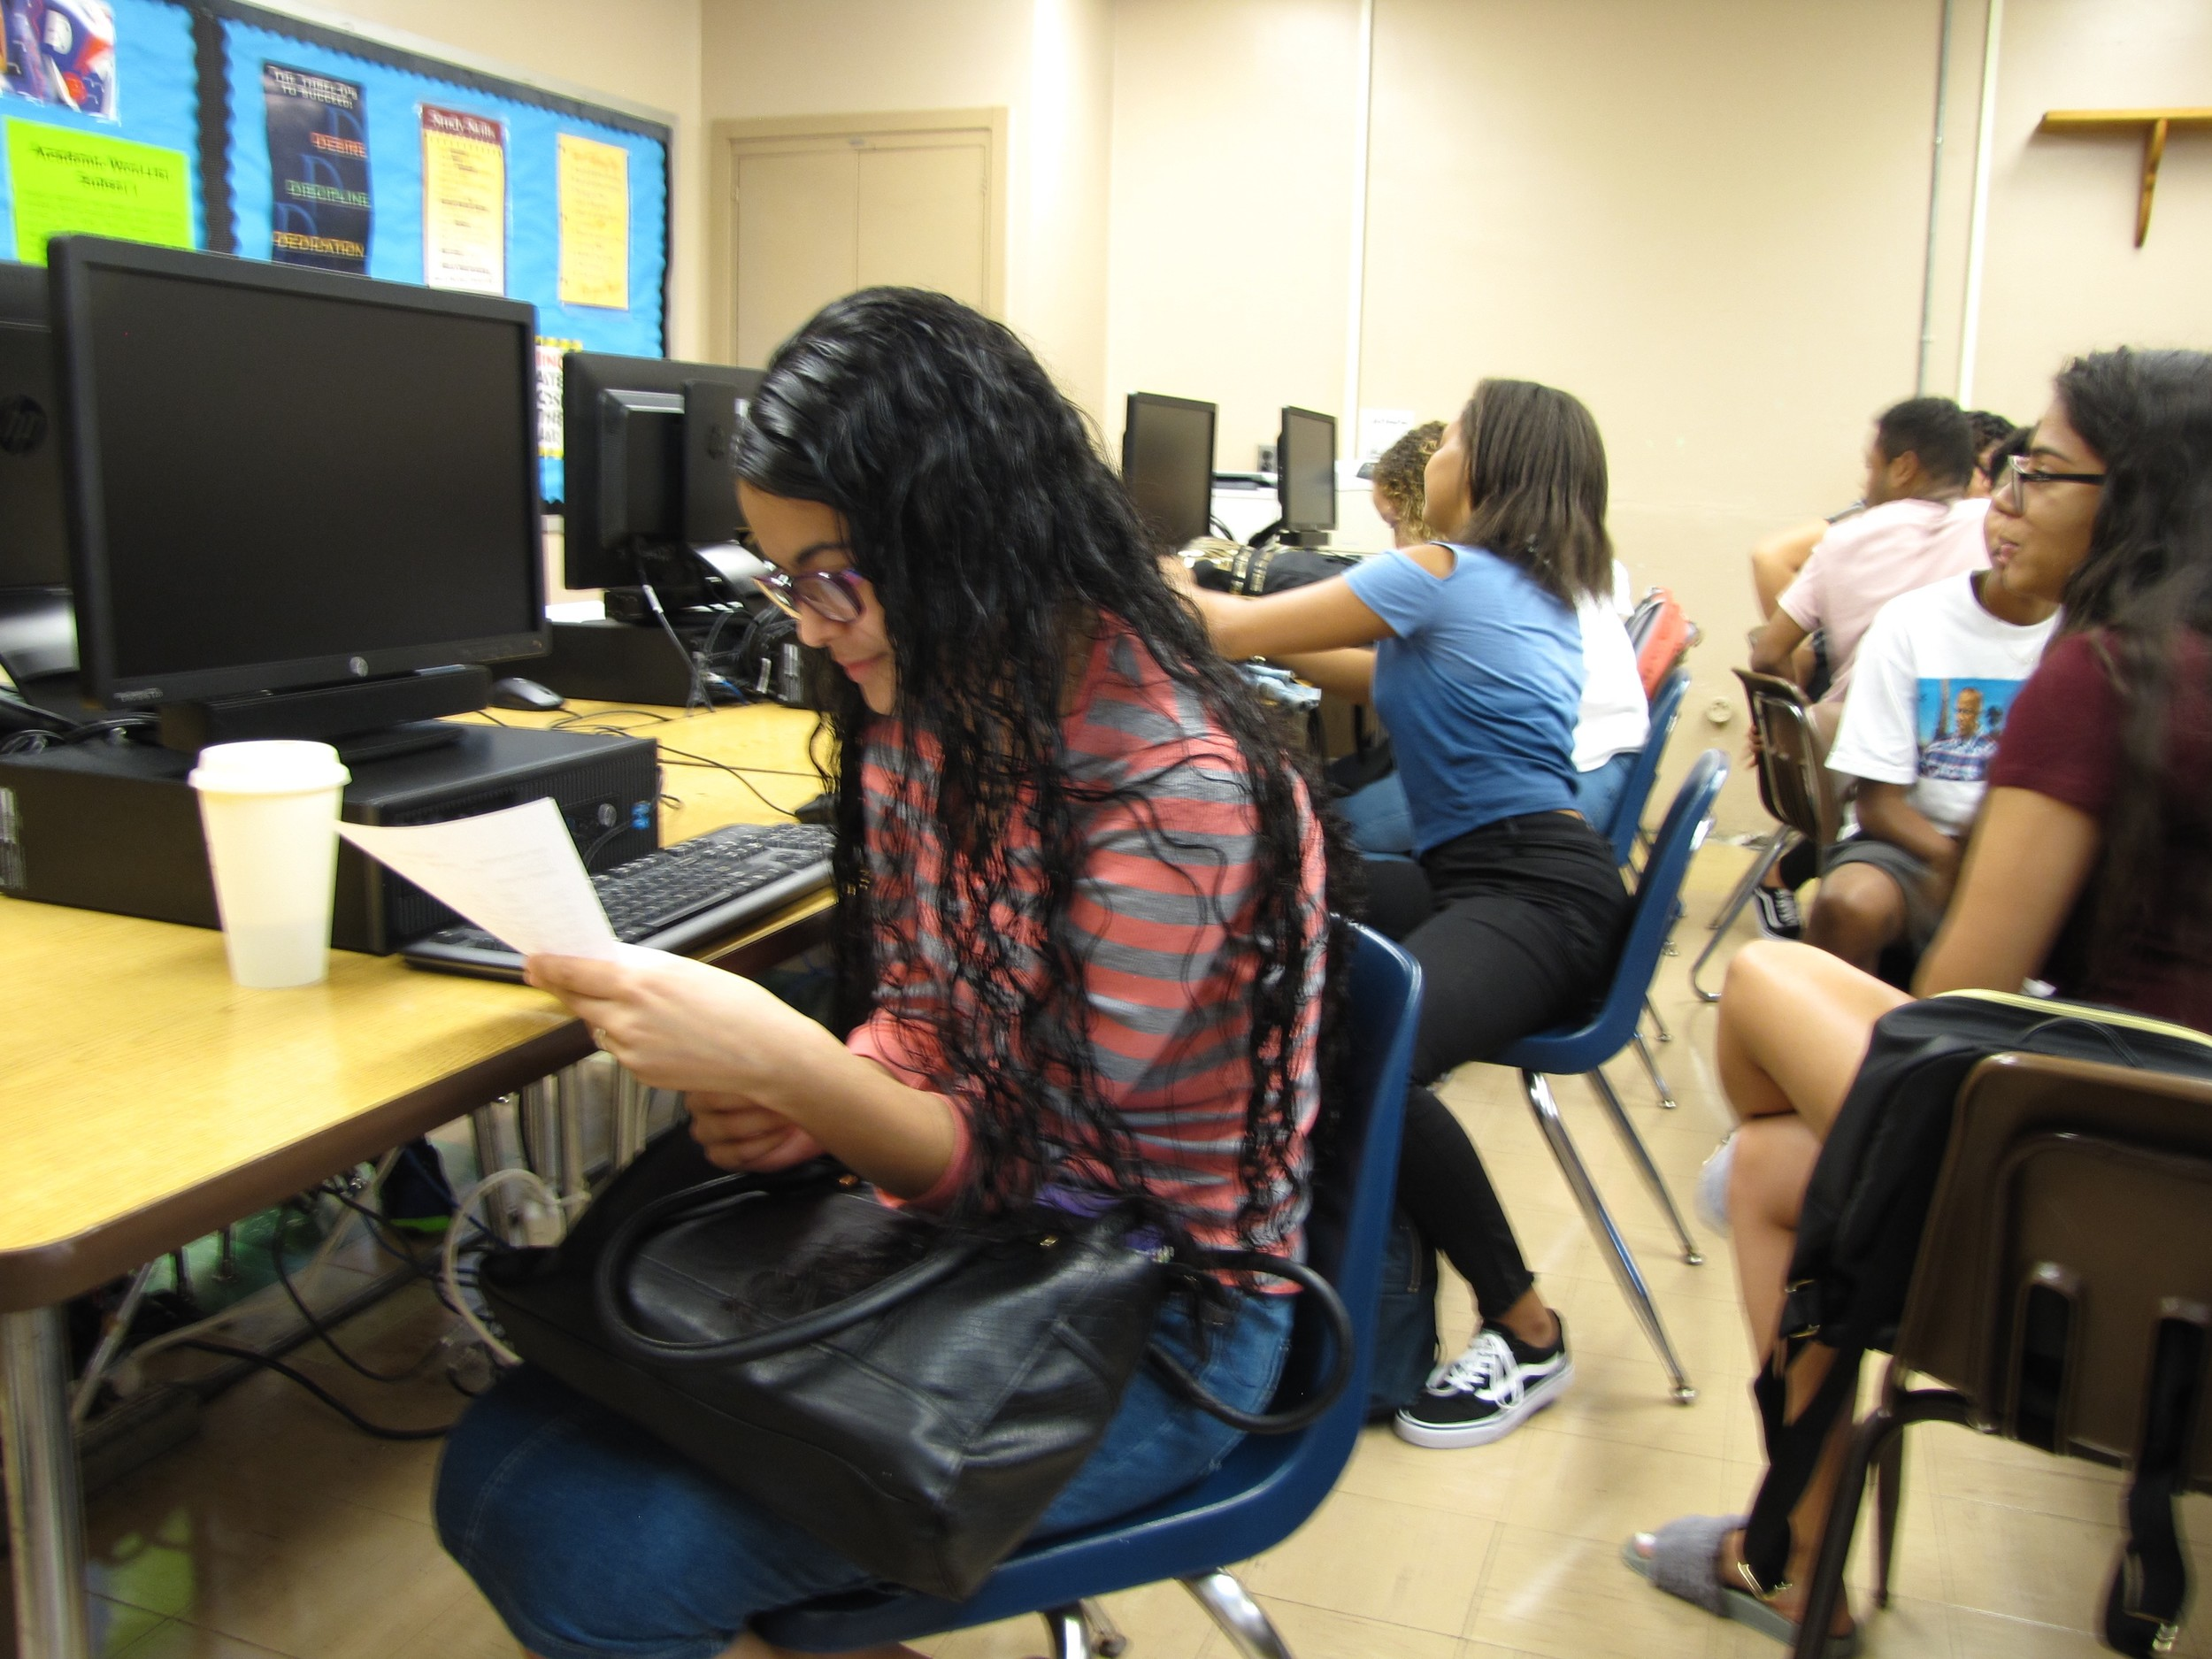 Freeport High School senior Rossy Baiz reviewed her class schedule during homeroom on the first day of school.